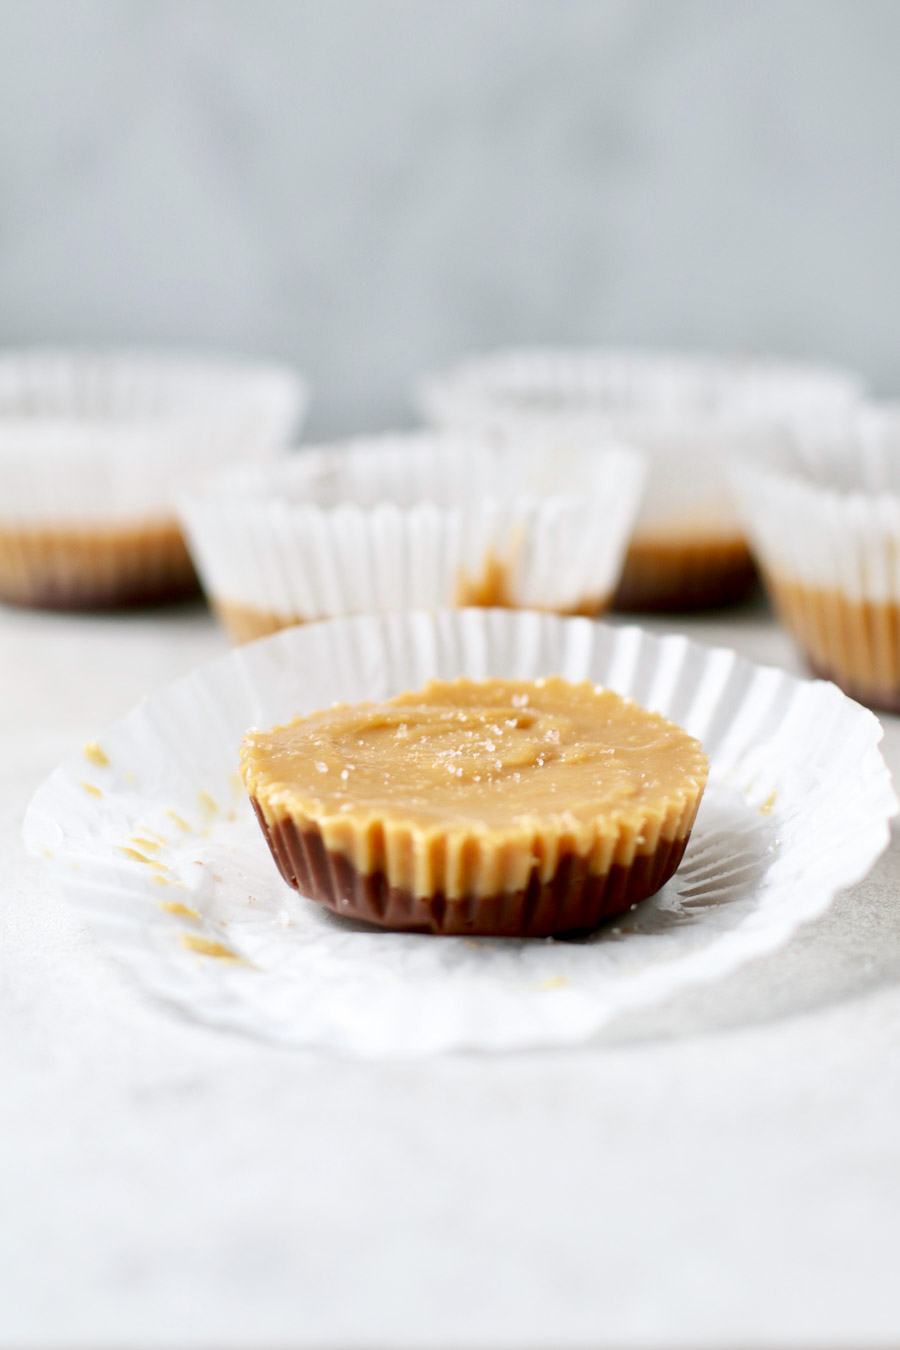 Almond Butter cup with muffin liner opened